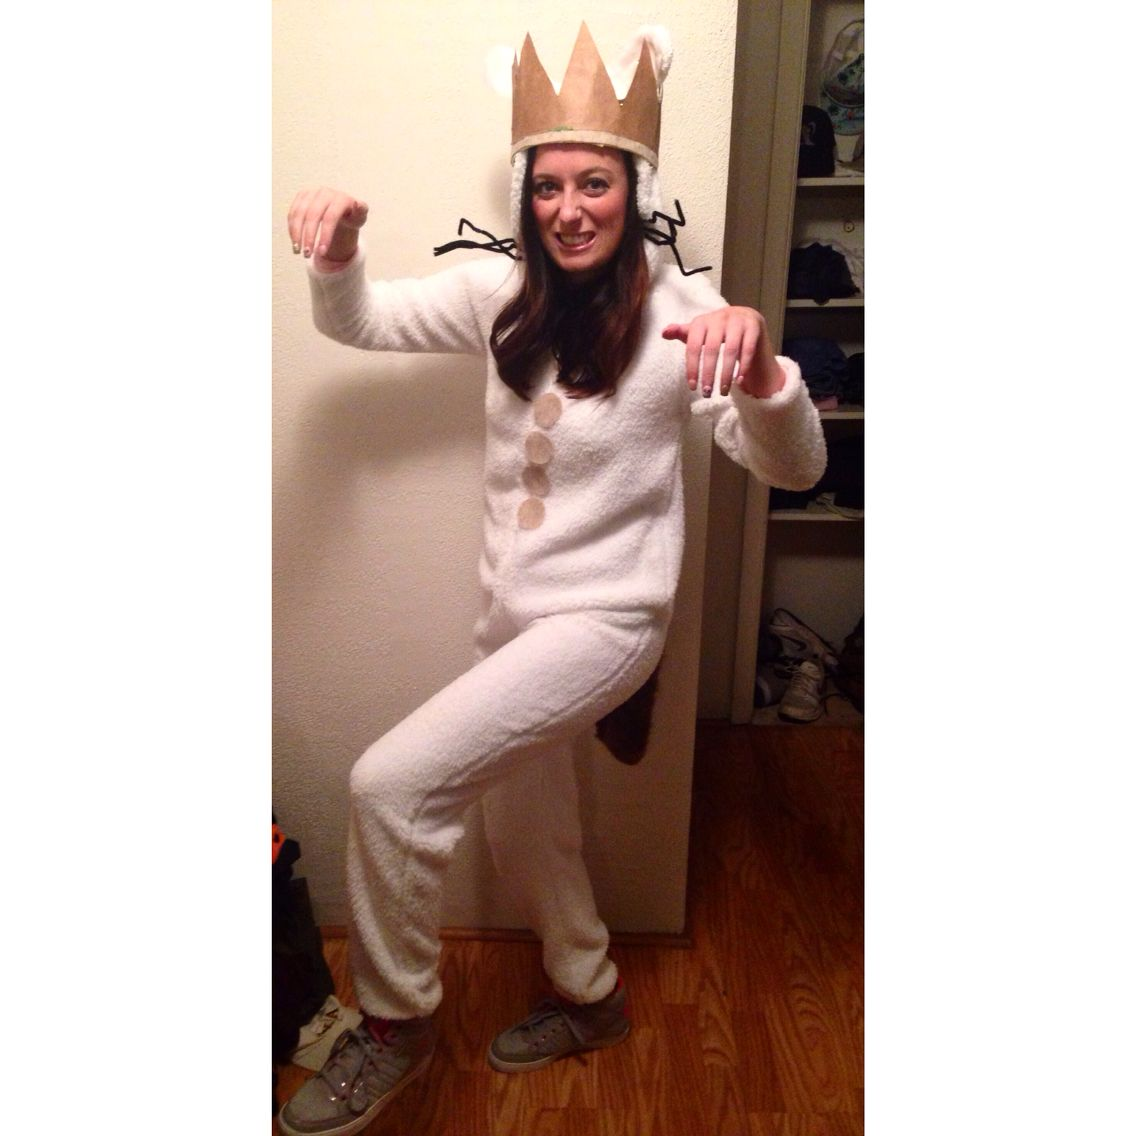 Where the Wild Things are Halloween costume!